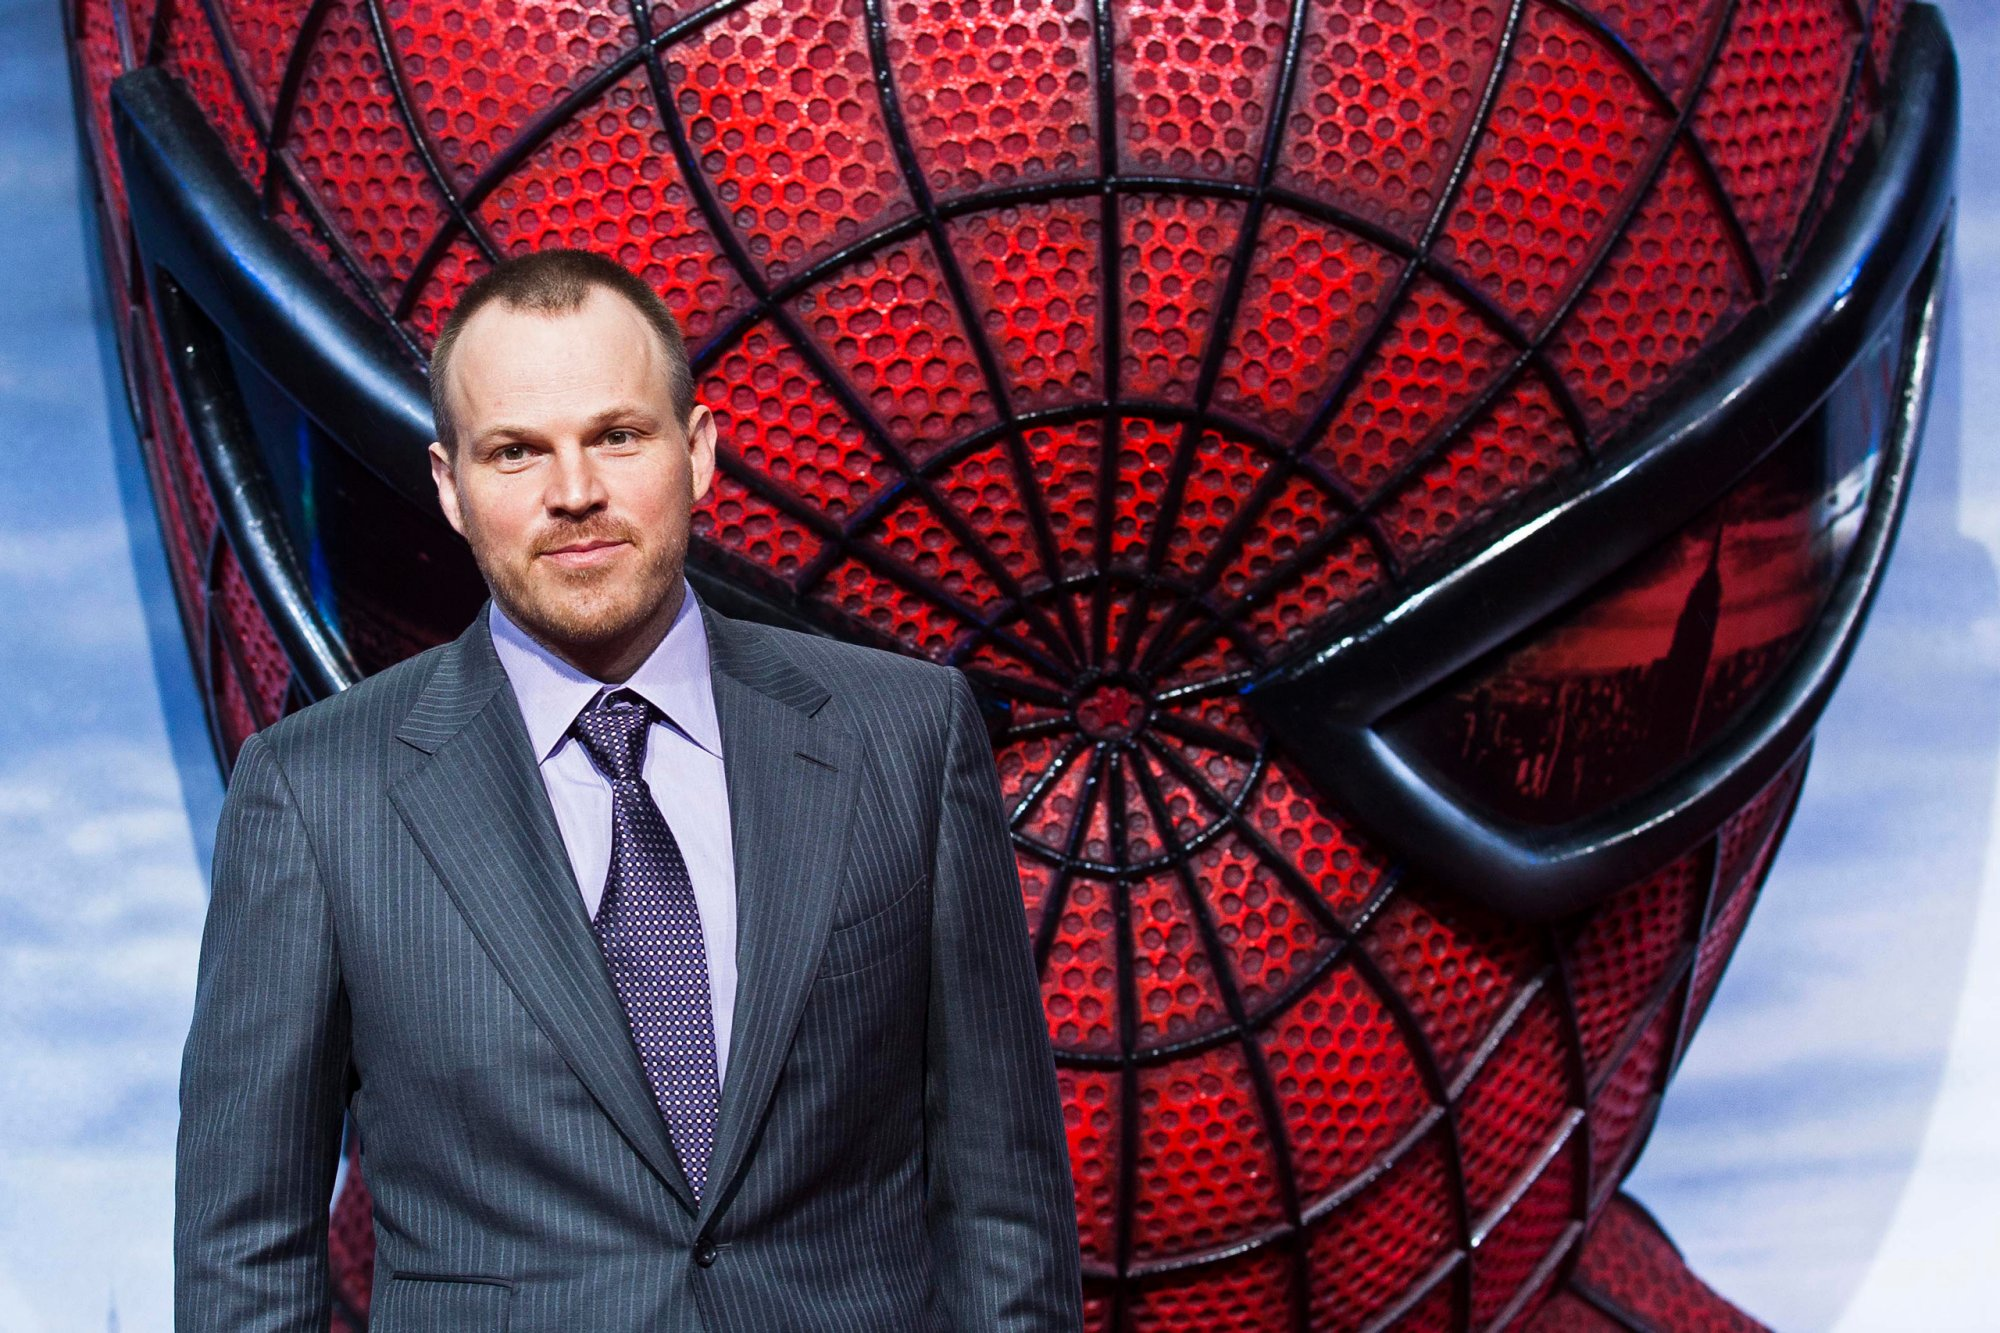 ep. 67 interview with marc webb, director of the amazing spider-man